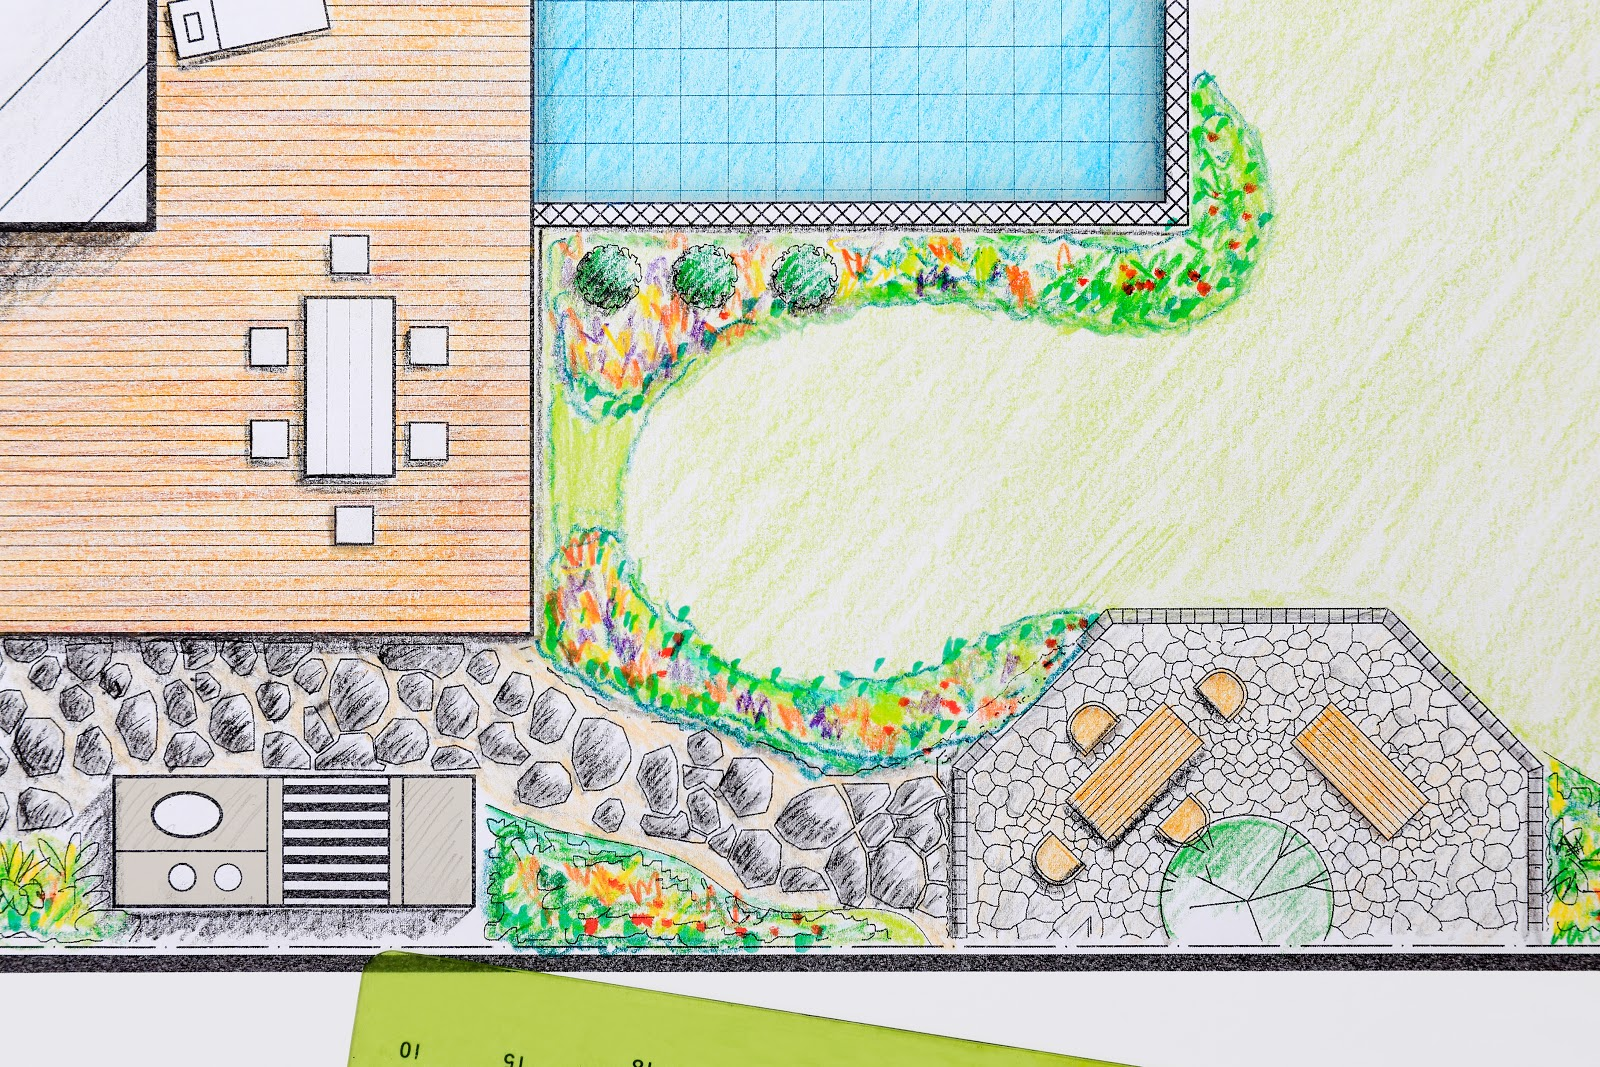 5 Landscaping Design Ideas To Make Your Property